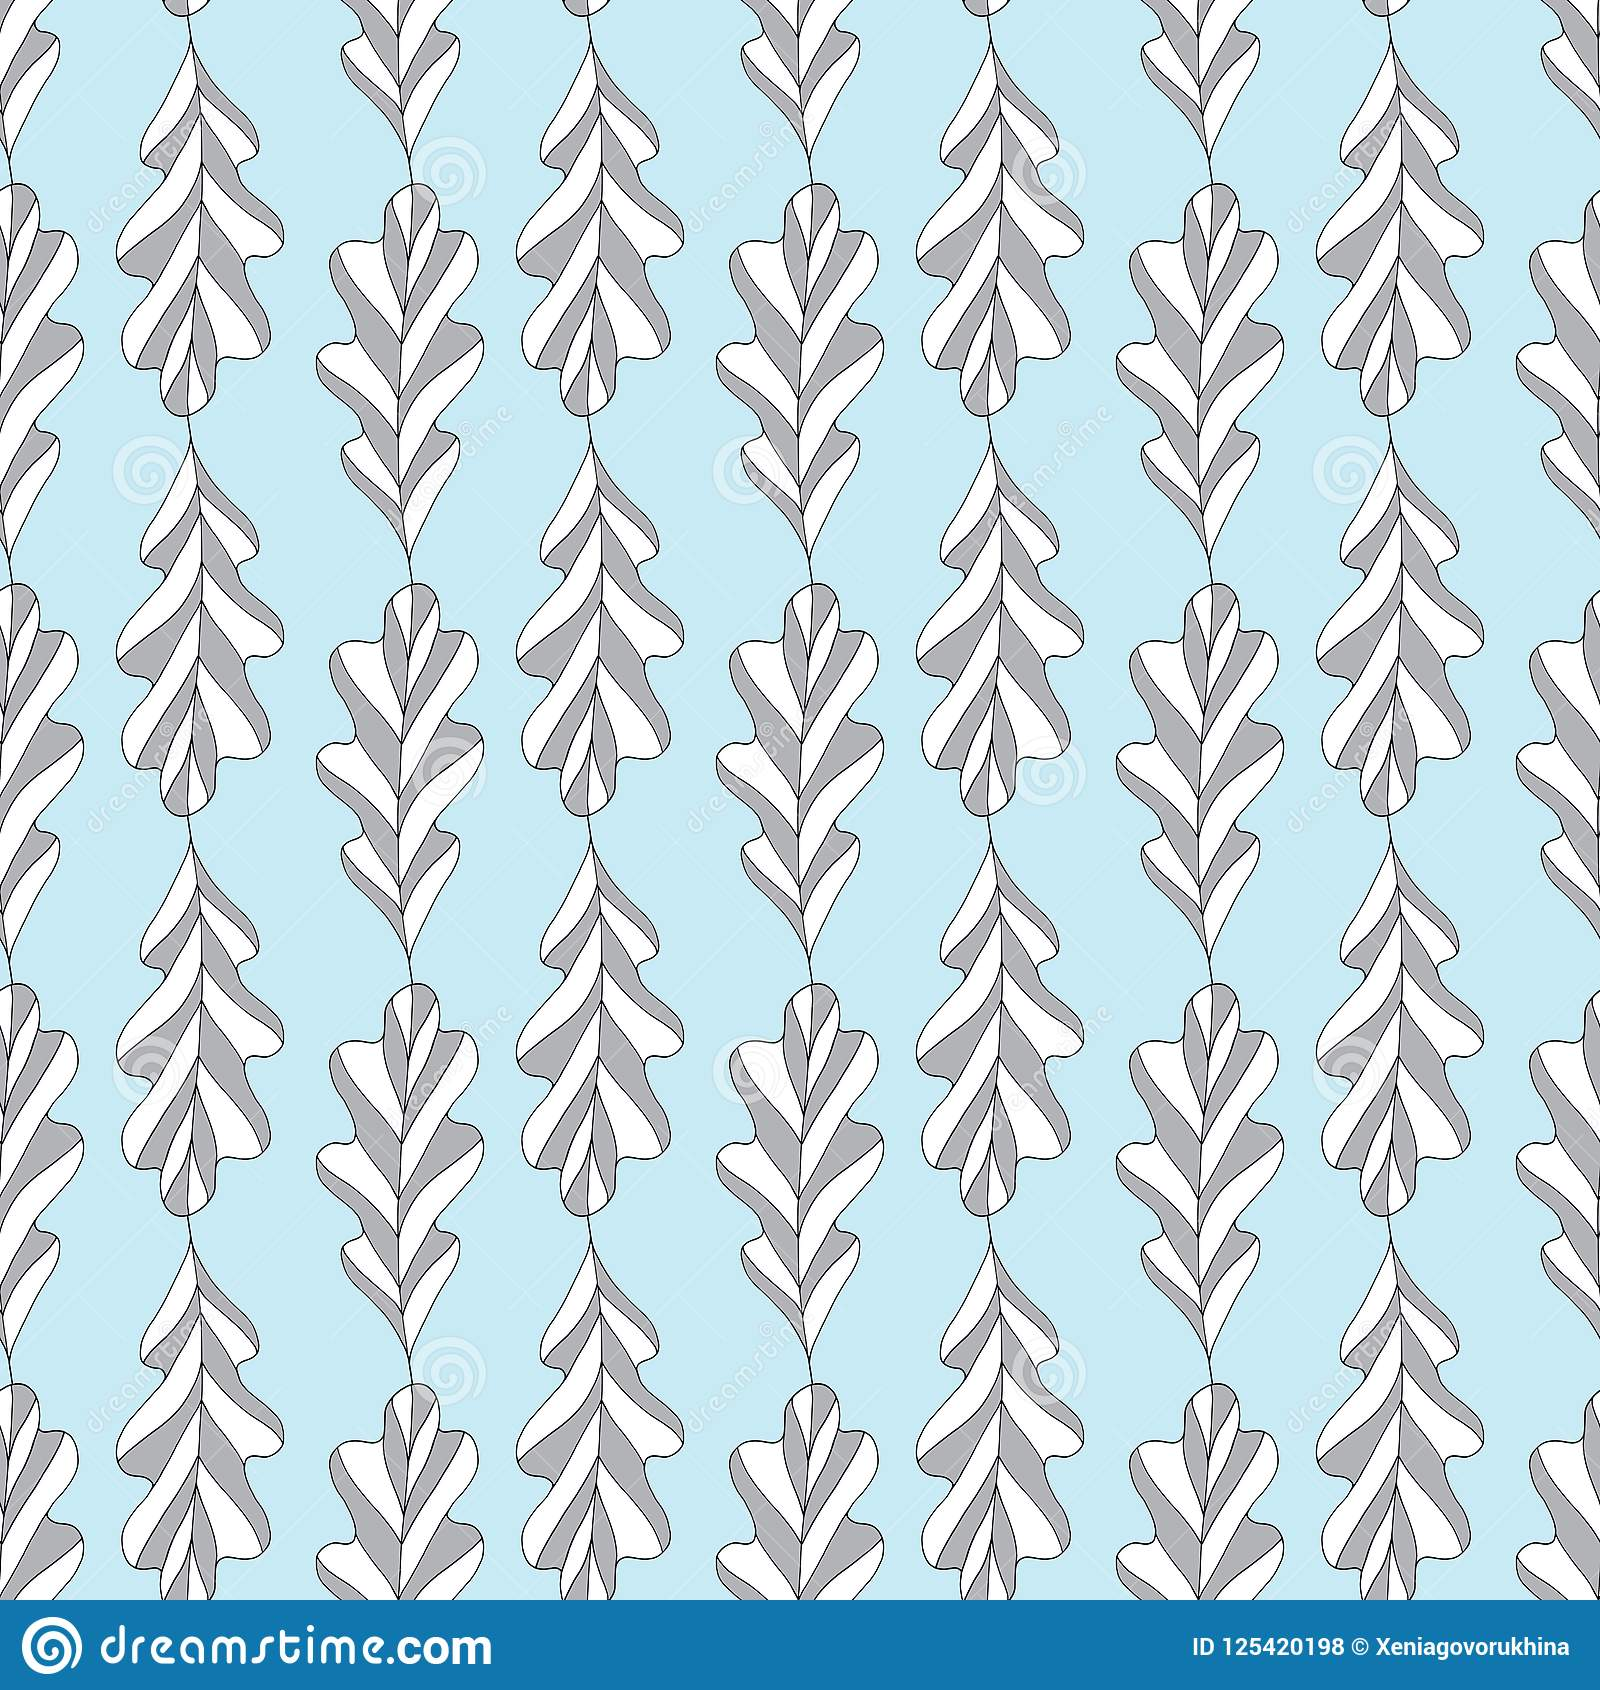 Oak Leaves Vector Seamless Pattern Hand Drawn Abstract Leaf